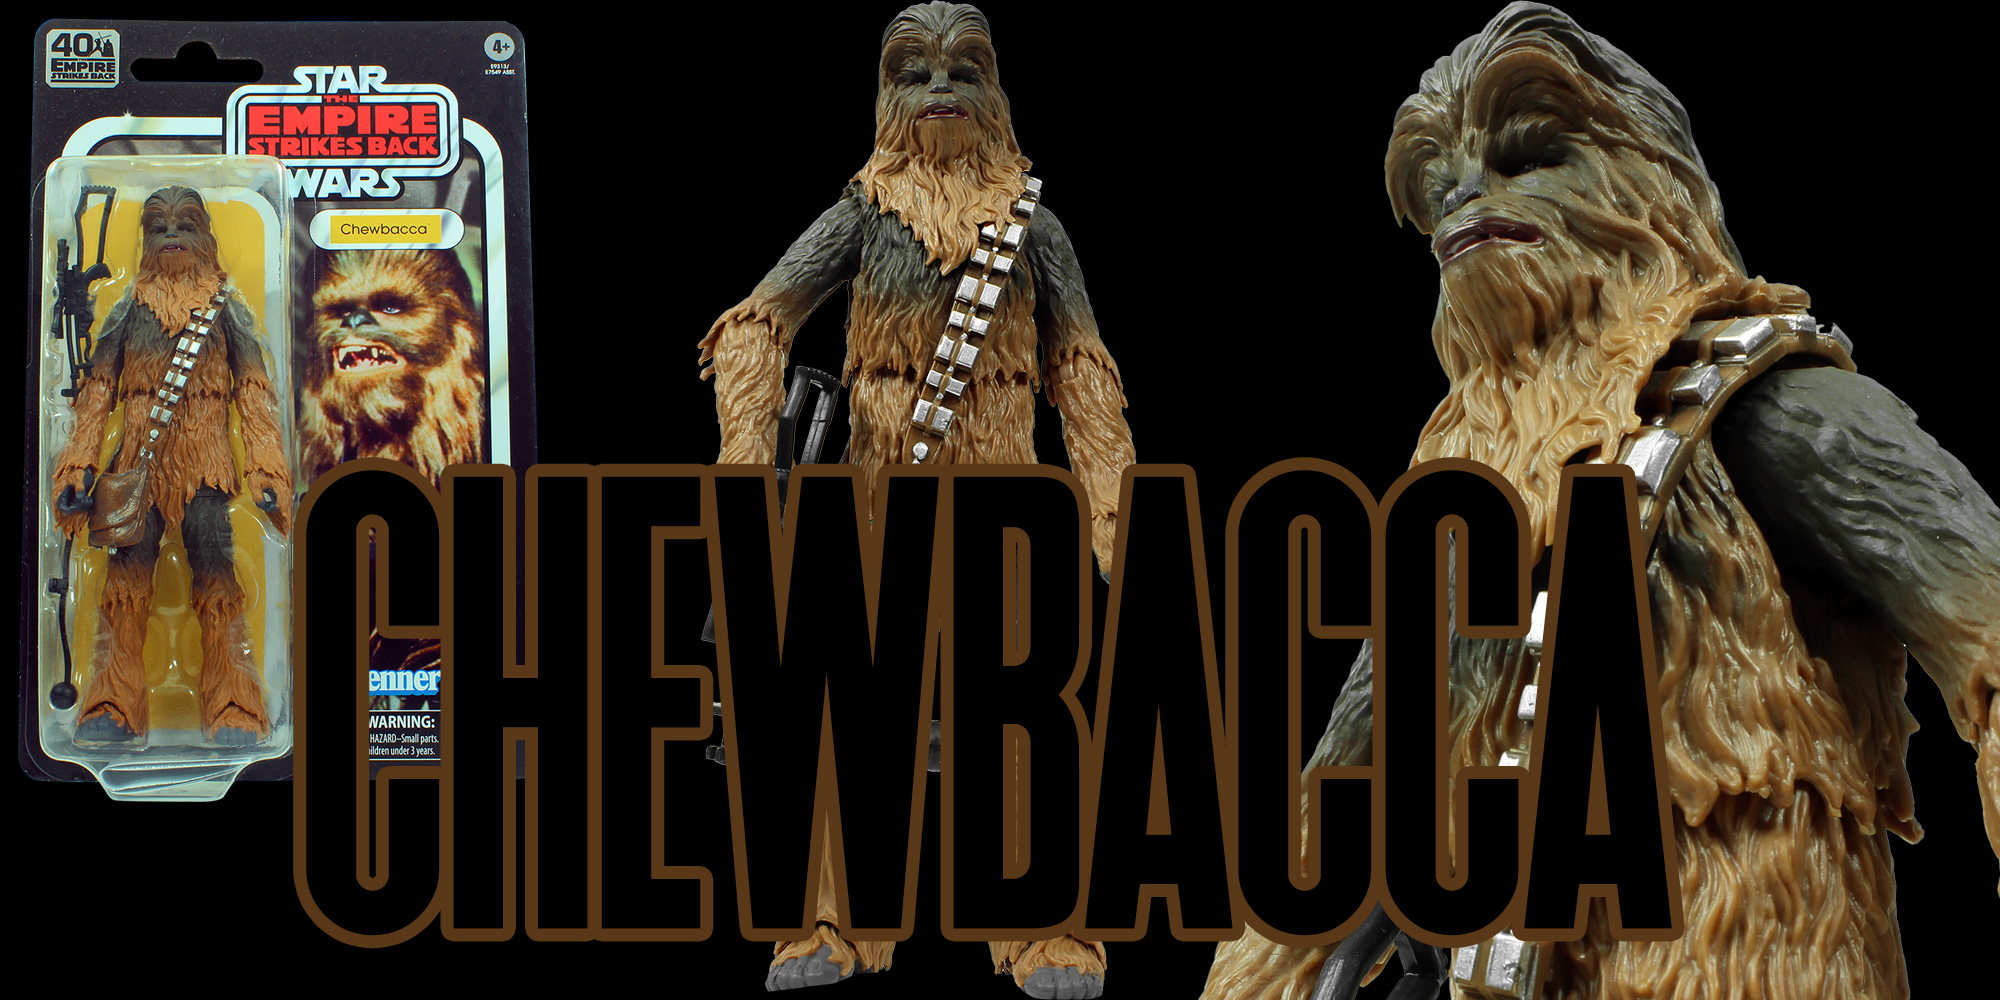 Black Series Chewbacca